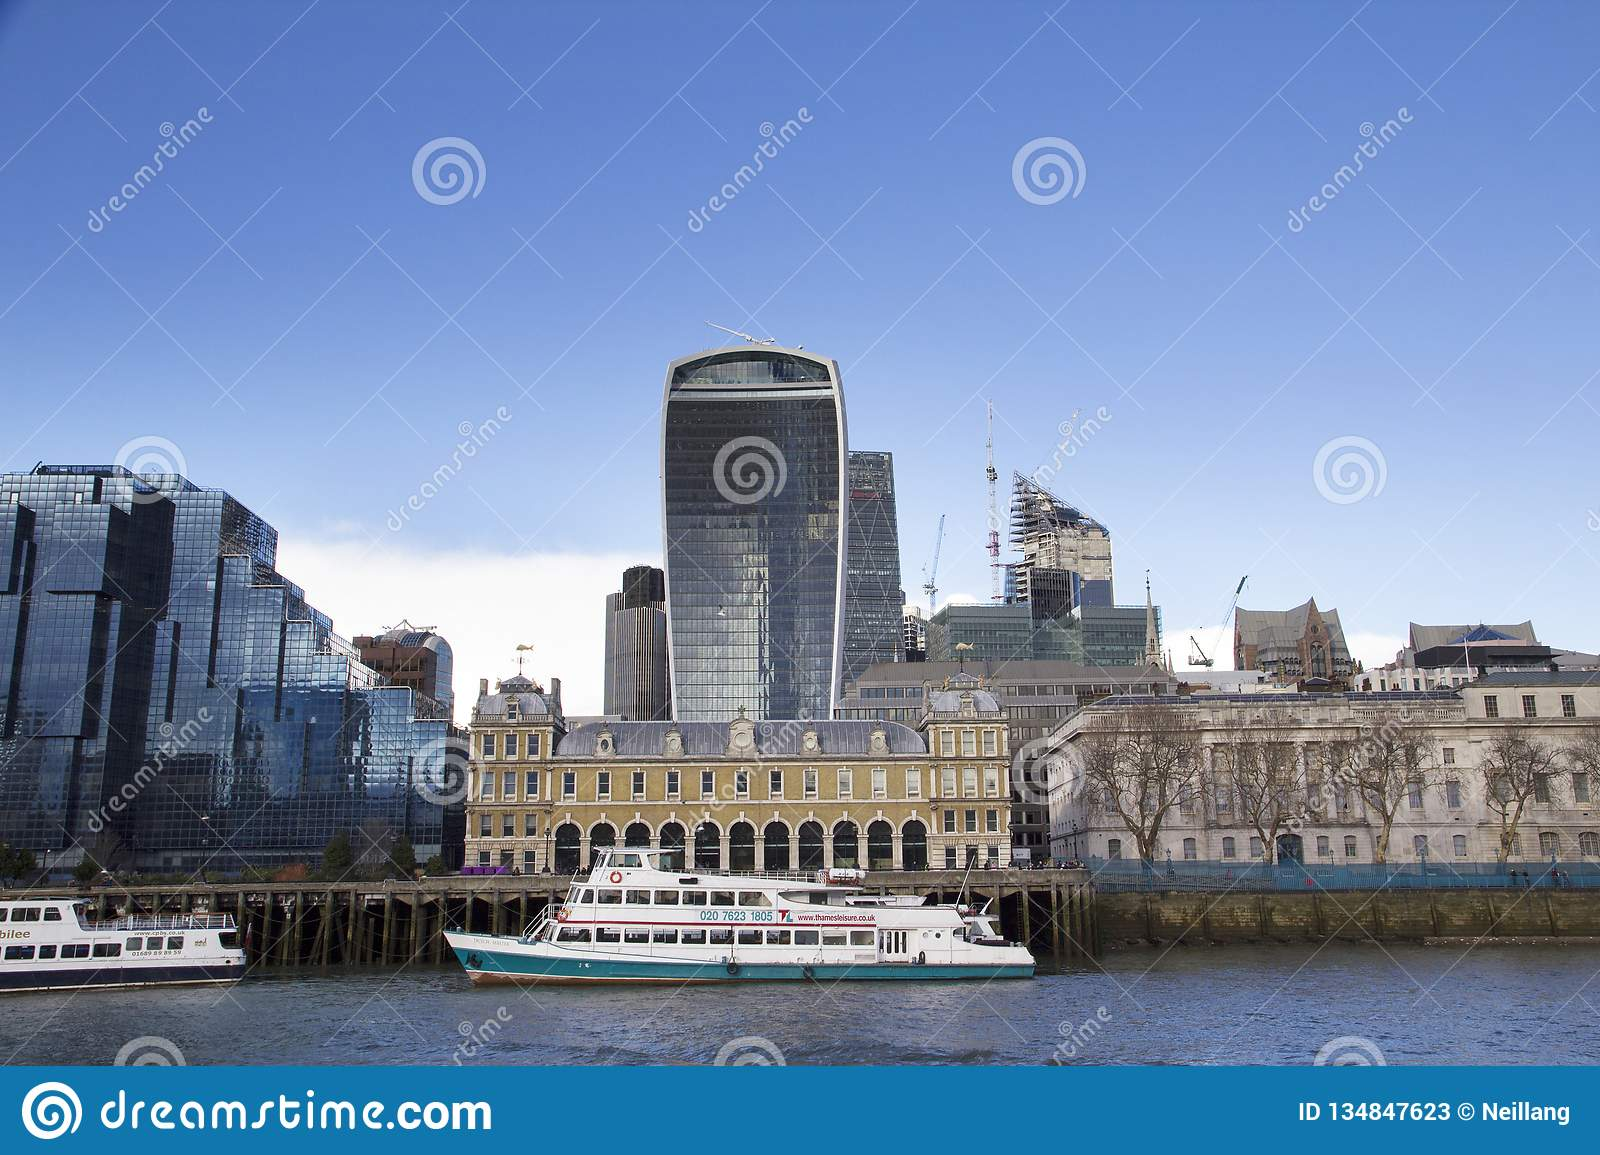 London cityscape across the River Thames with a view of the Leadenhall, 30 St Mary Axe and 20 Fenchurch